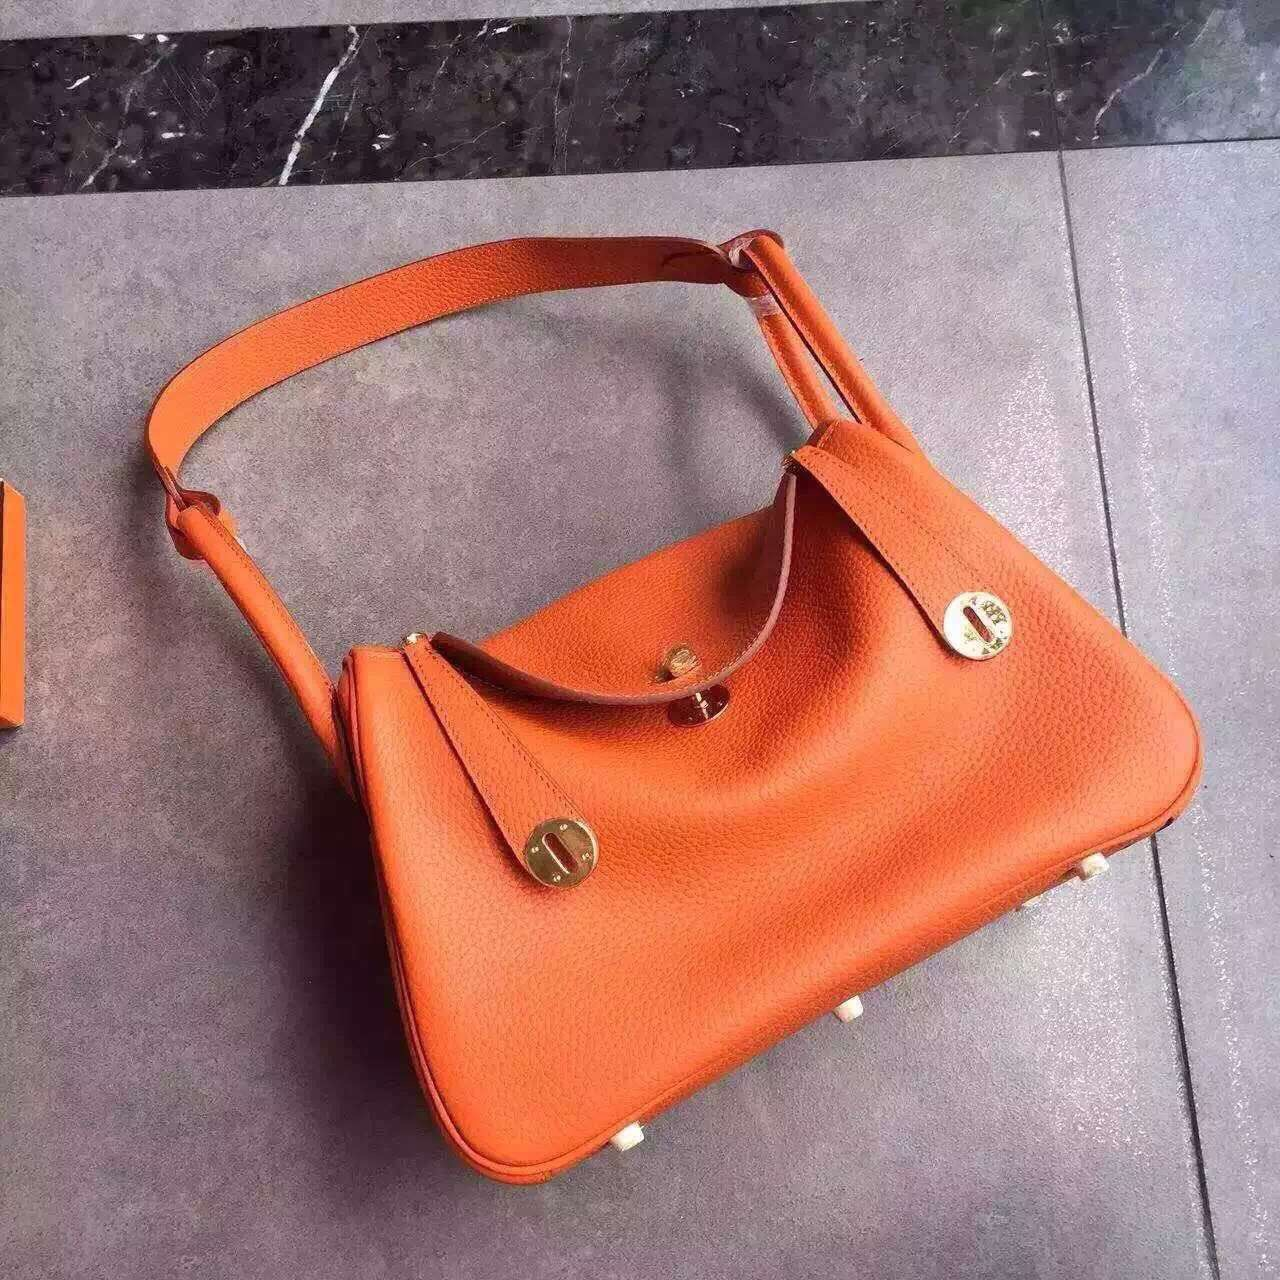 Hermes Lindy 30cm Handbag Orange Gold